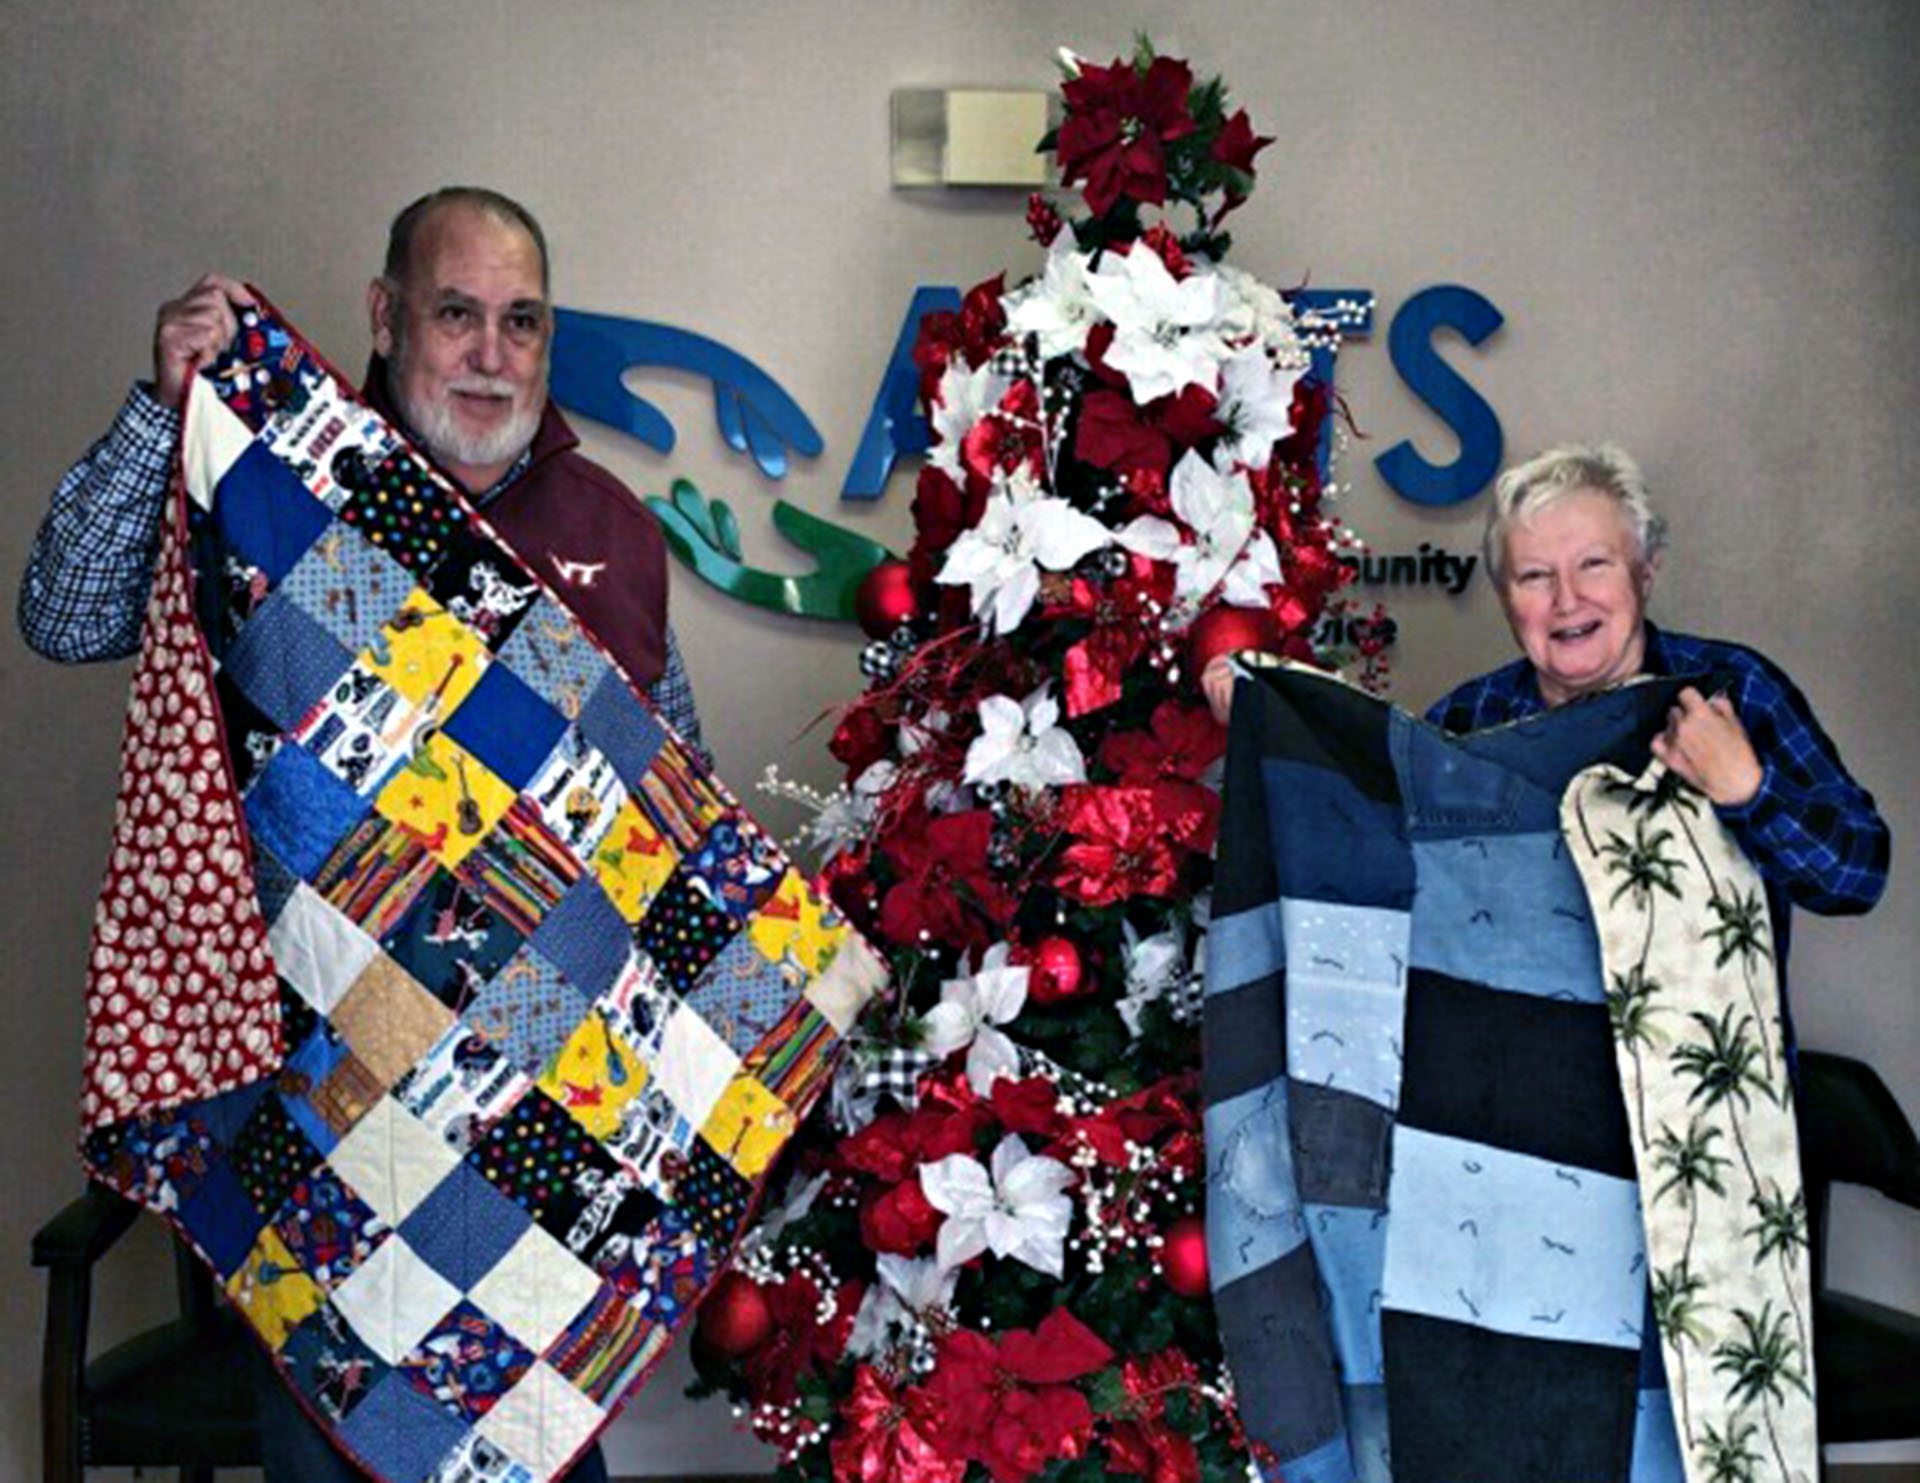 Cabin Branch Quilters donates quilts to non-profit